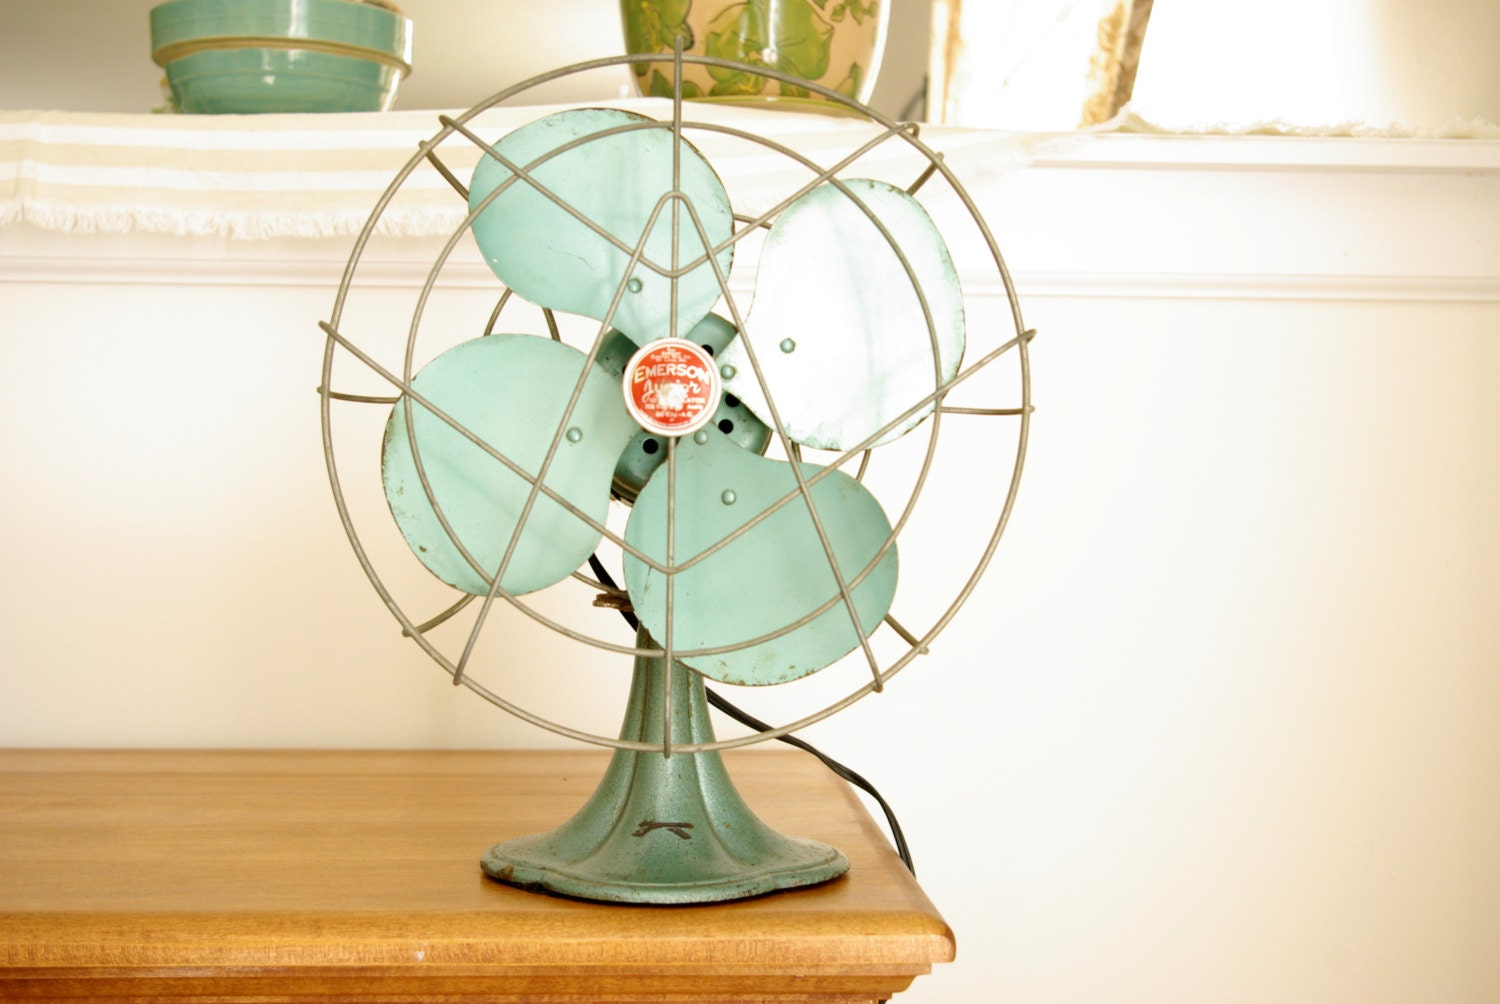 Antique Emerson Fans : Antique emerson junior electric fan in mint green working